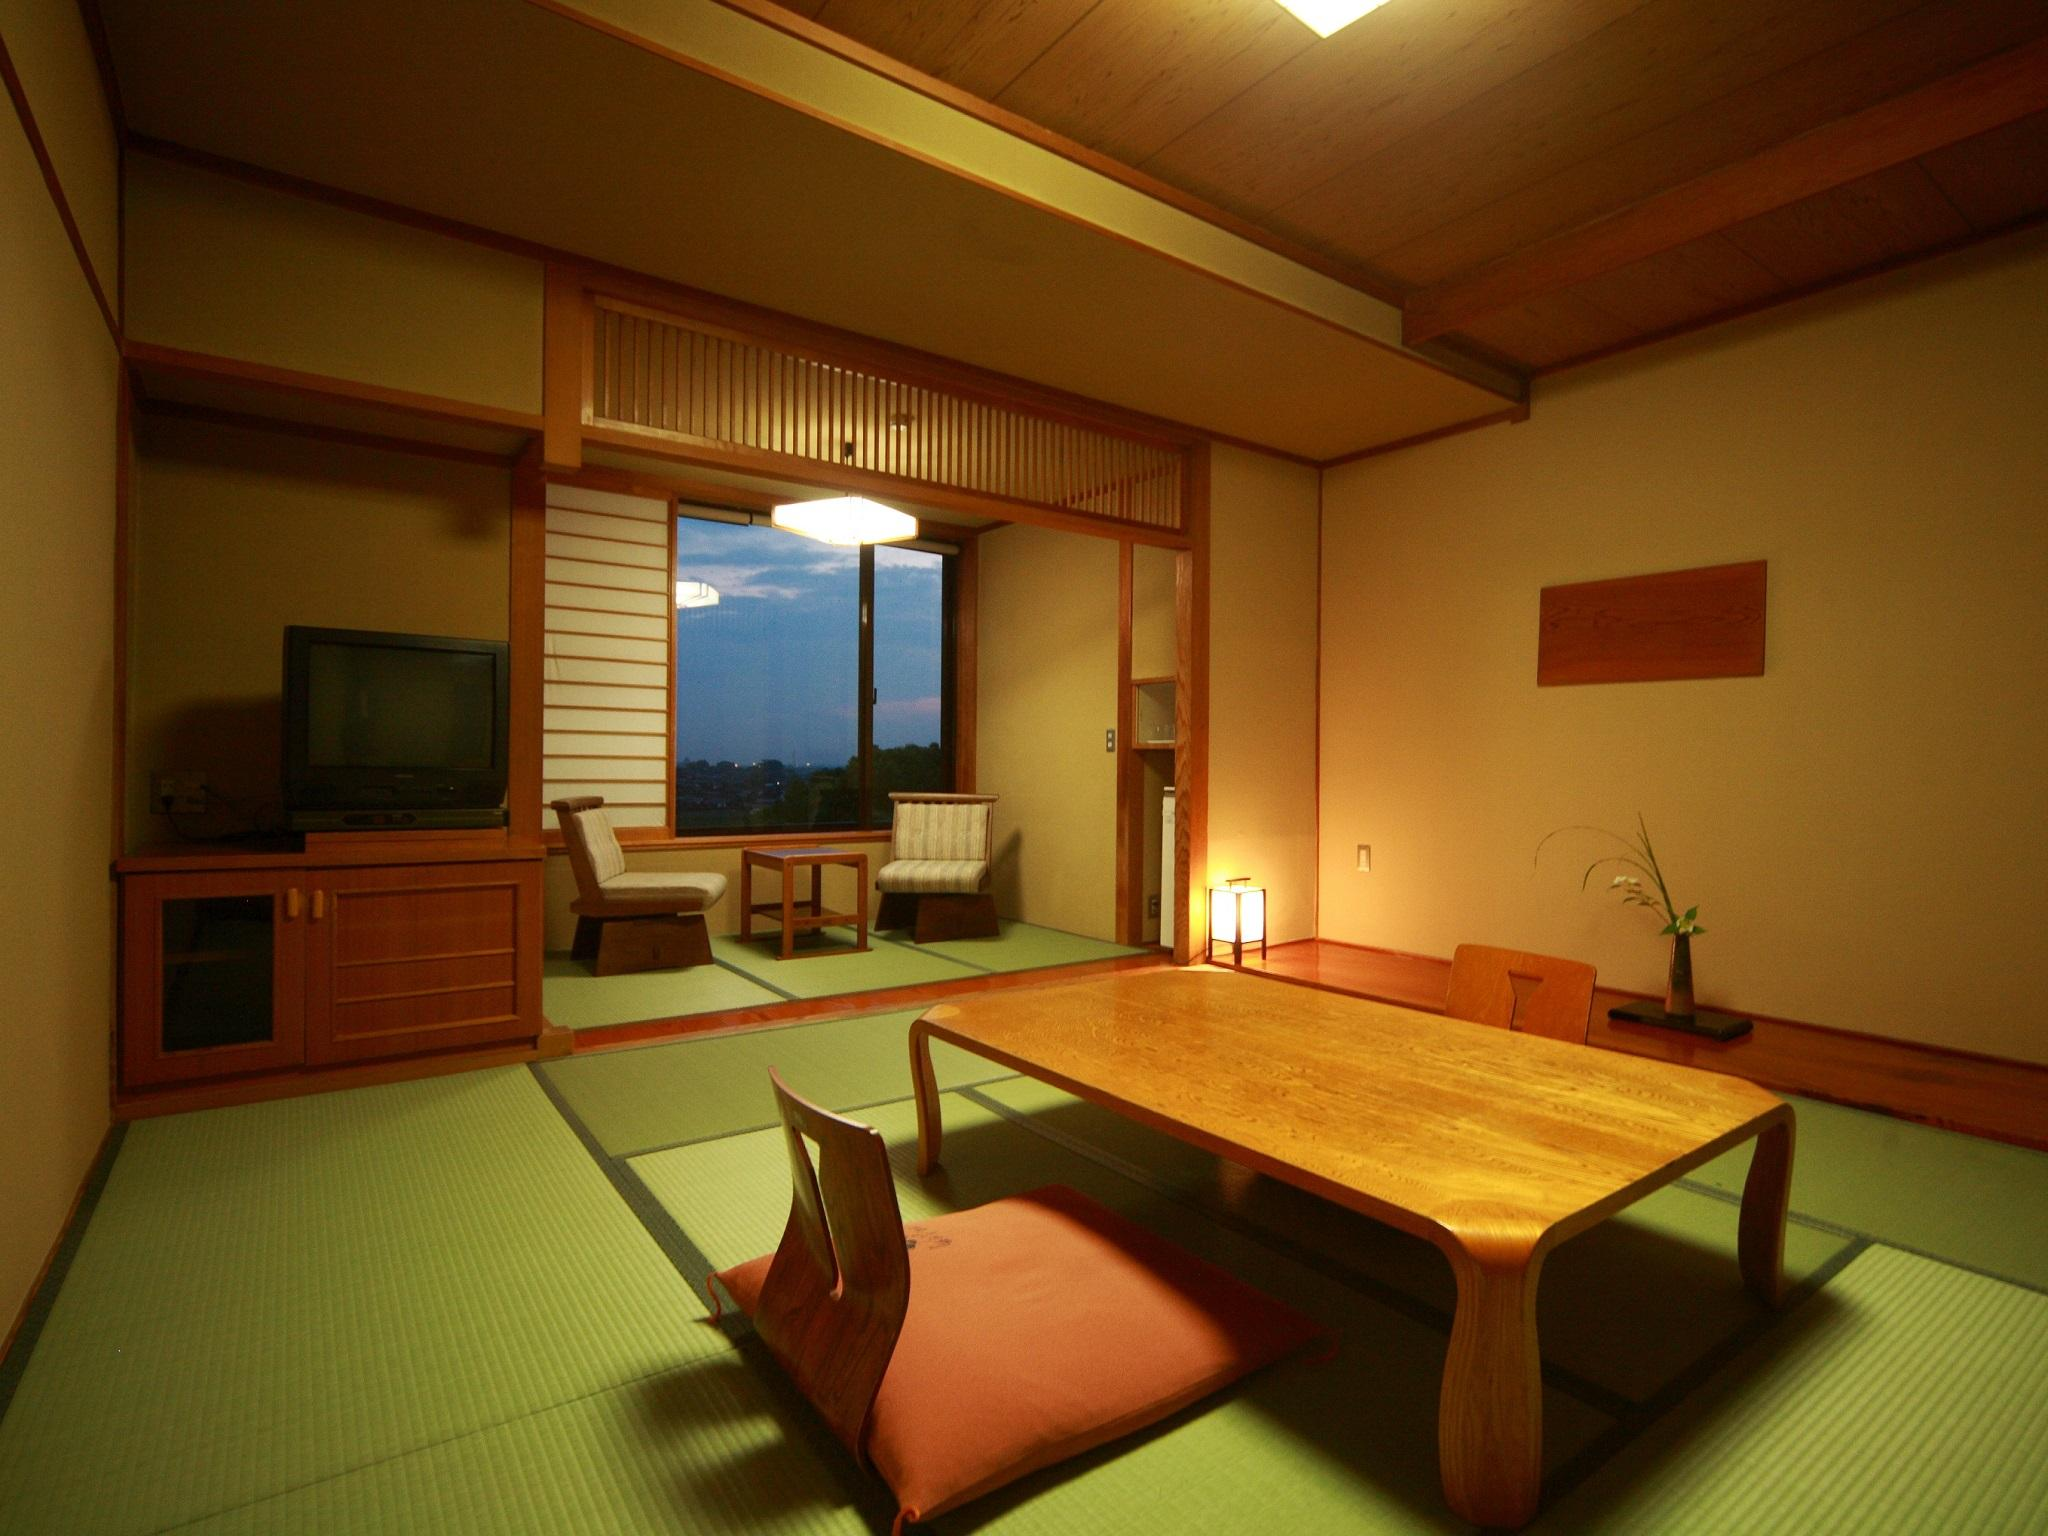 Camera in Stile Giapponese per 3 Persone (Japanese Room ( 3 person ))